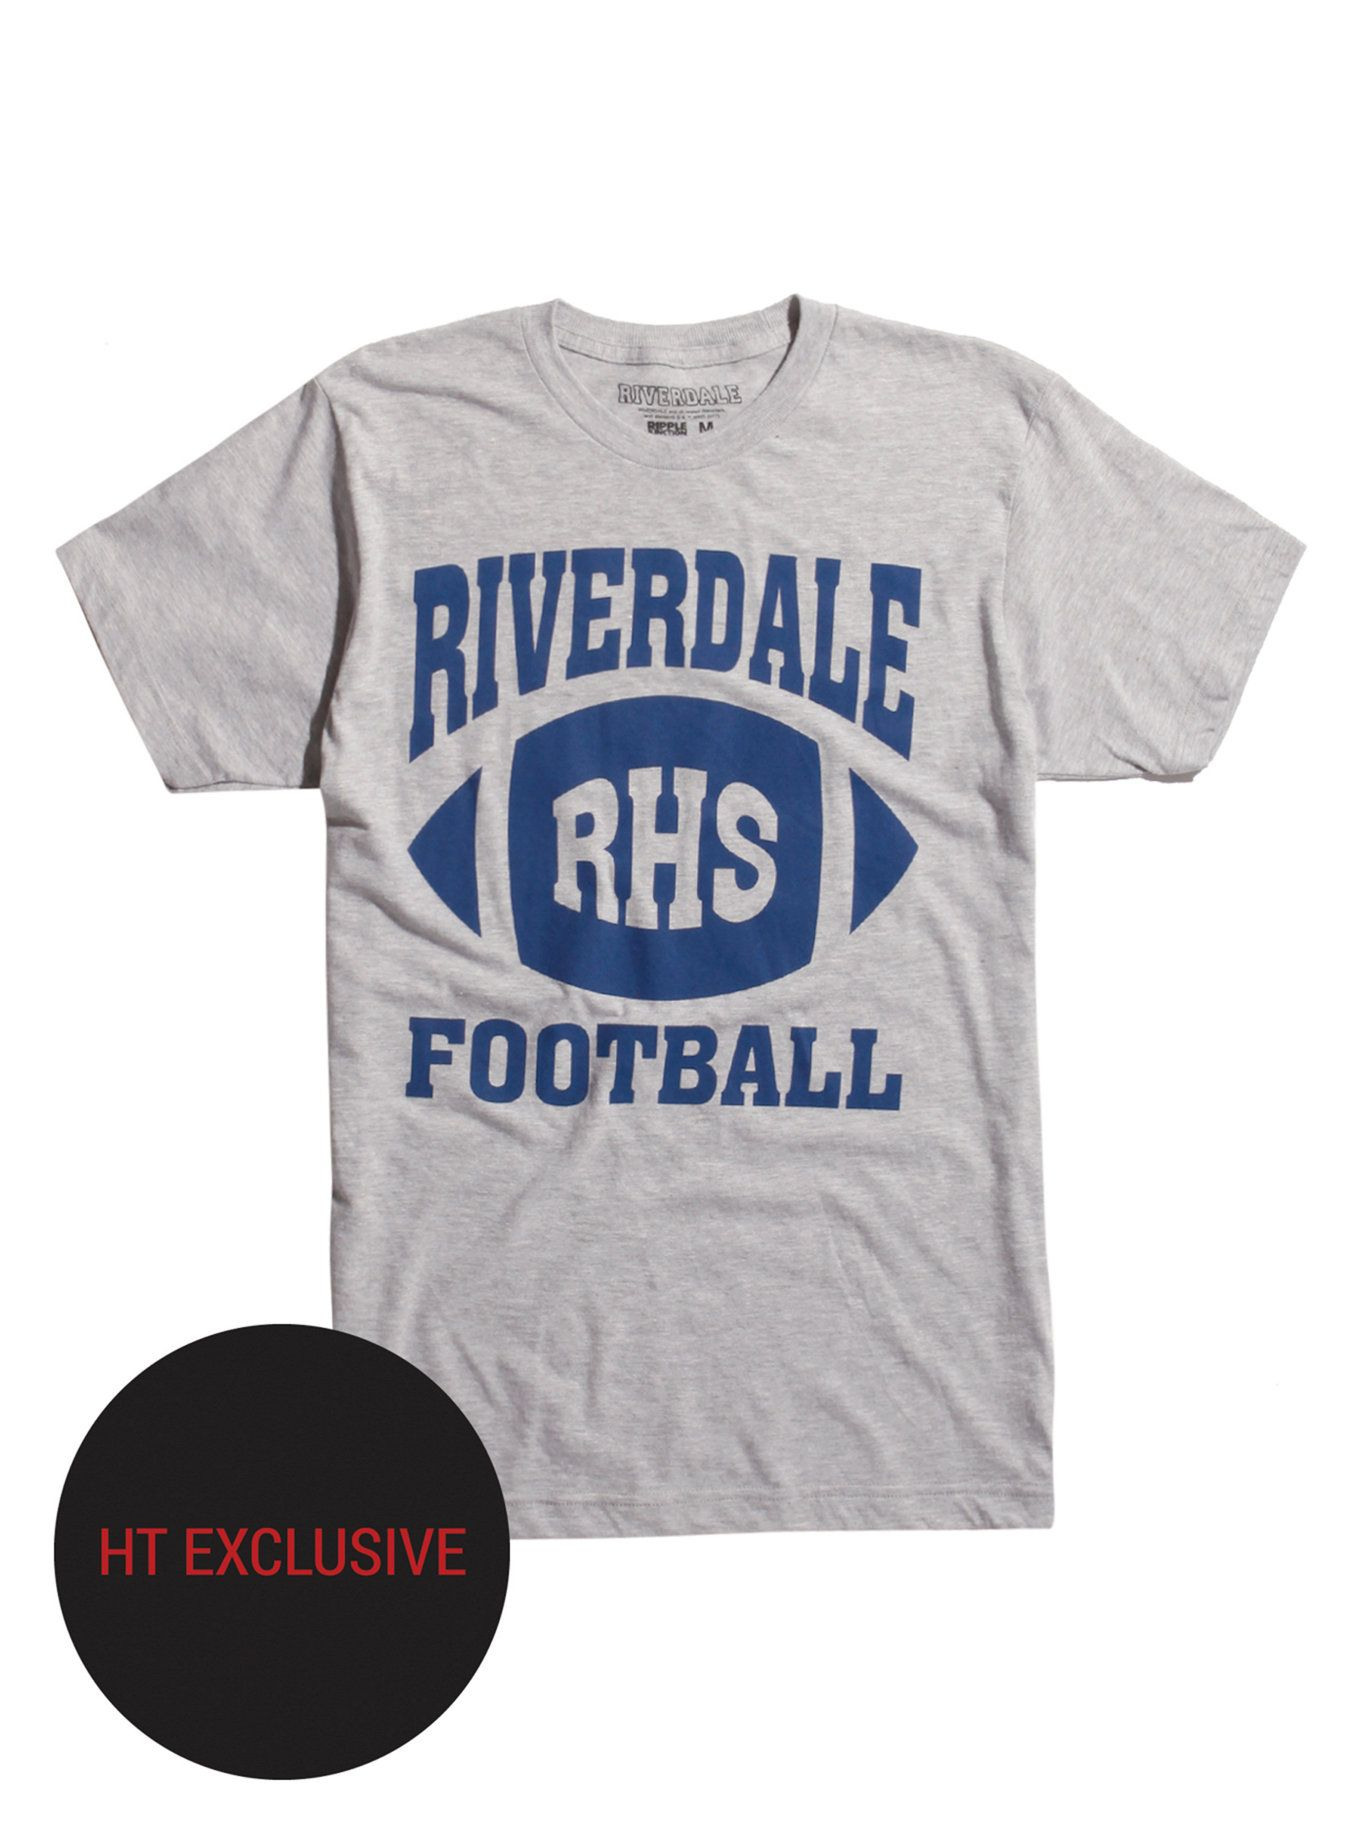 579438eb1 Join the Riverdale football team with this RHS blue logo T-shirt. Hang out  with Archie at Pop's Chock'lit Shoppe or strut down the halls of Riverdale  High ...